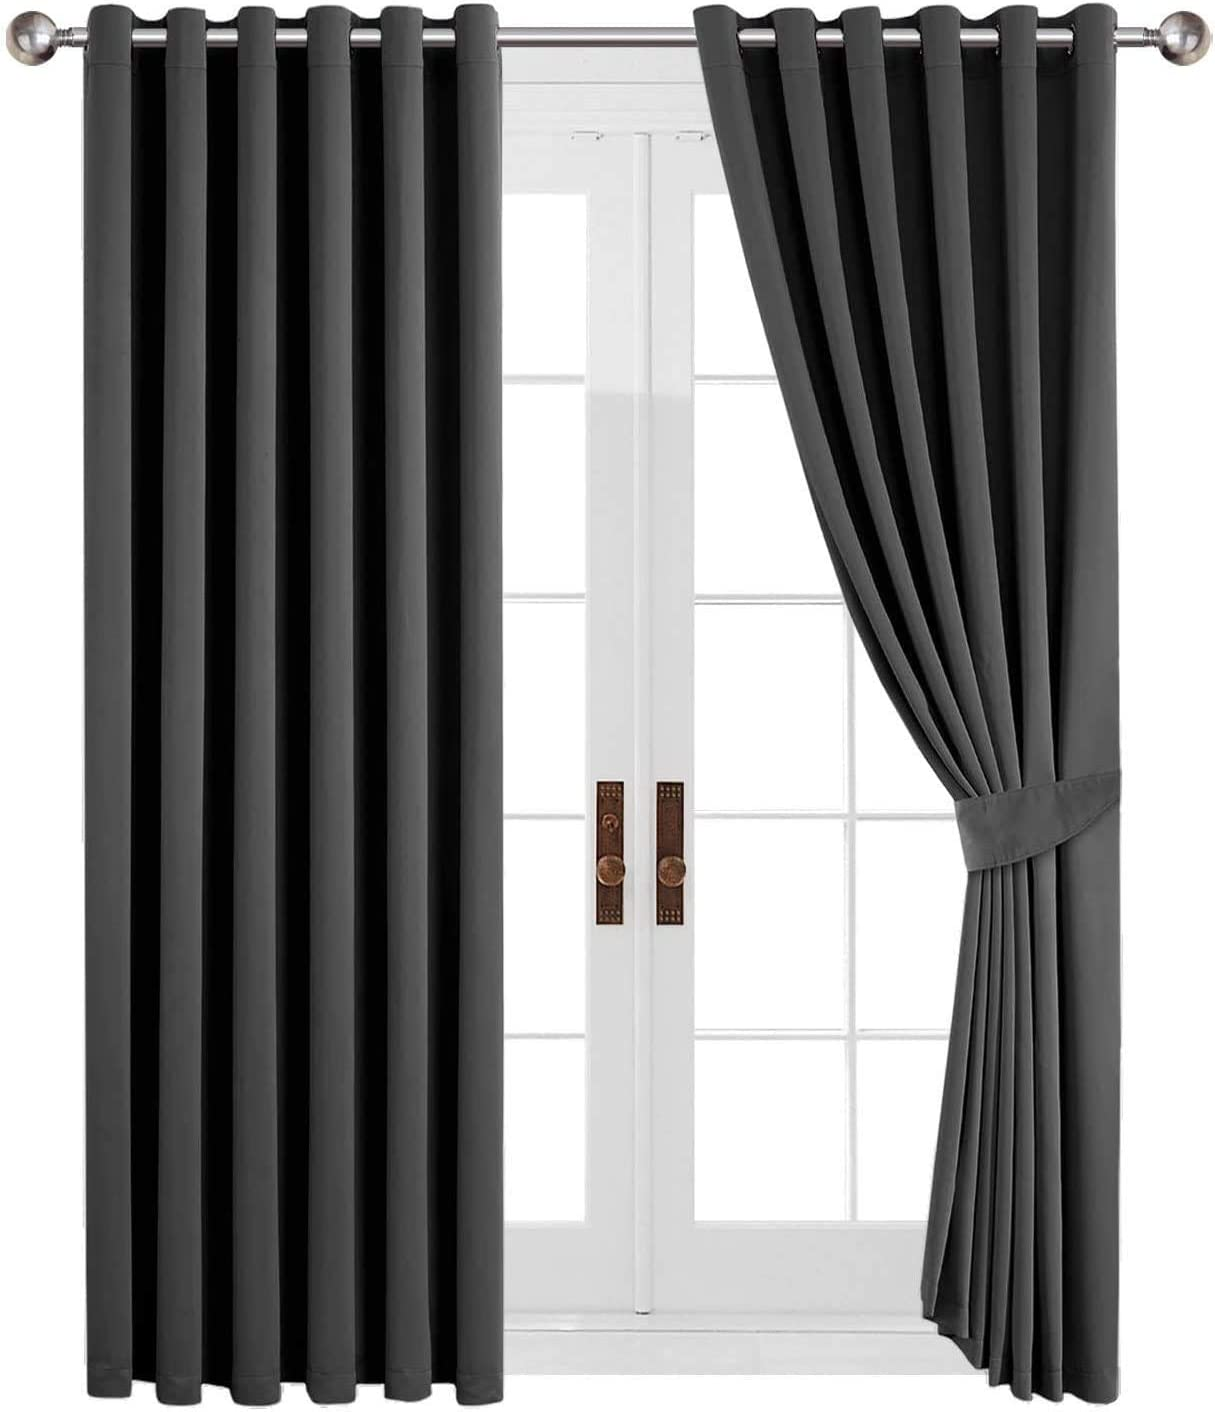 """Aspire Homeware Blackout Curtains for Bedroom 46 x 54 Grey Eyelet Curtains for Living Room Thermal Ring Top Curtains 2 Panels Grey 46"""" Width X 54"""" Drop (117 x 137 CM)"""